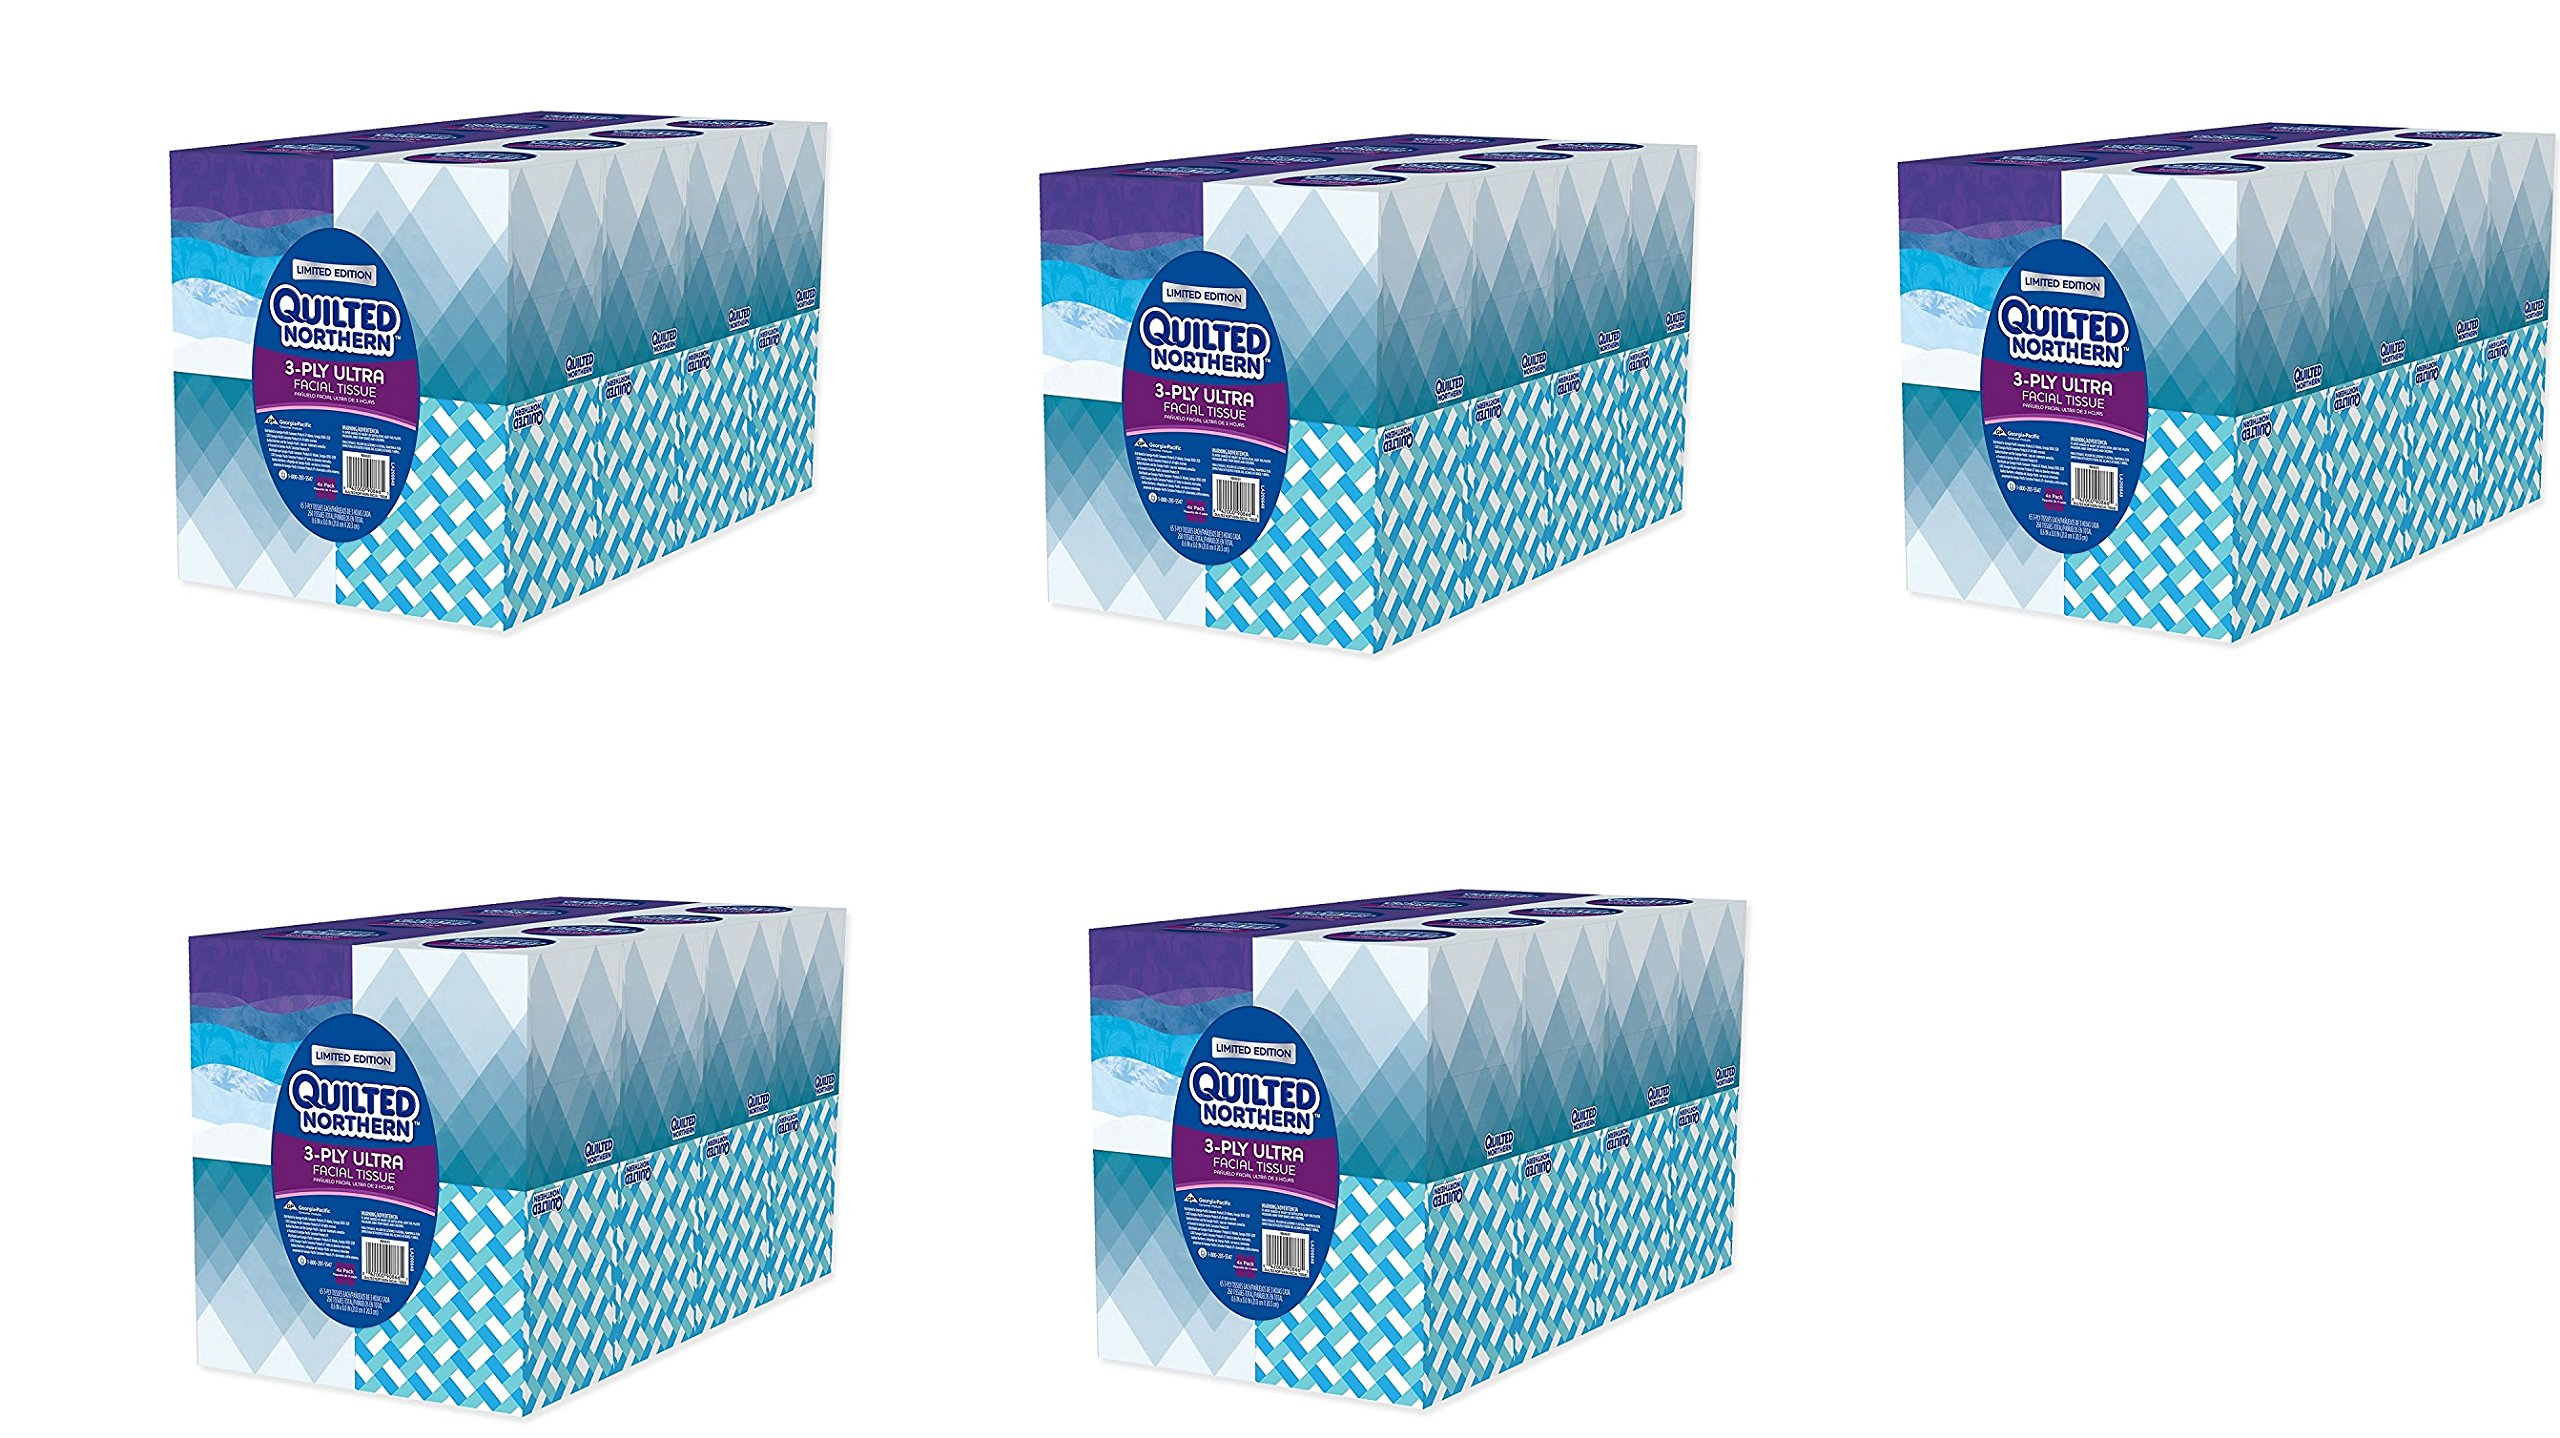 Quilted Northern Ultra fbUBEr Facial Tissue Cube, 16 Boxes (Pack of 5)